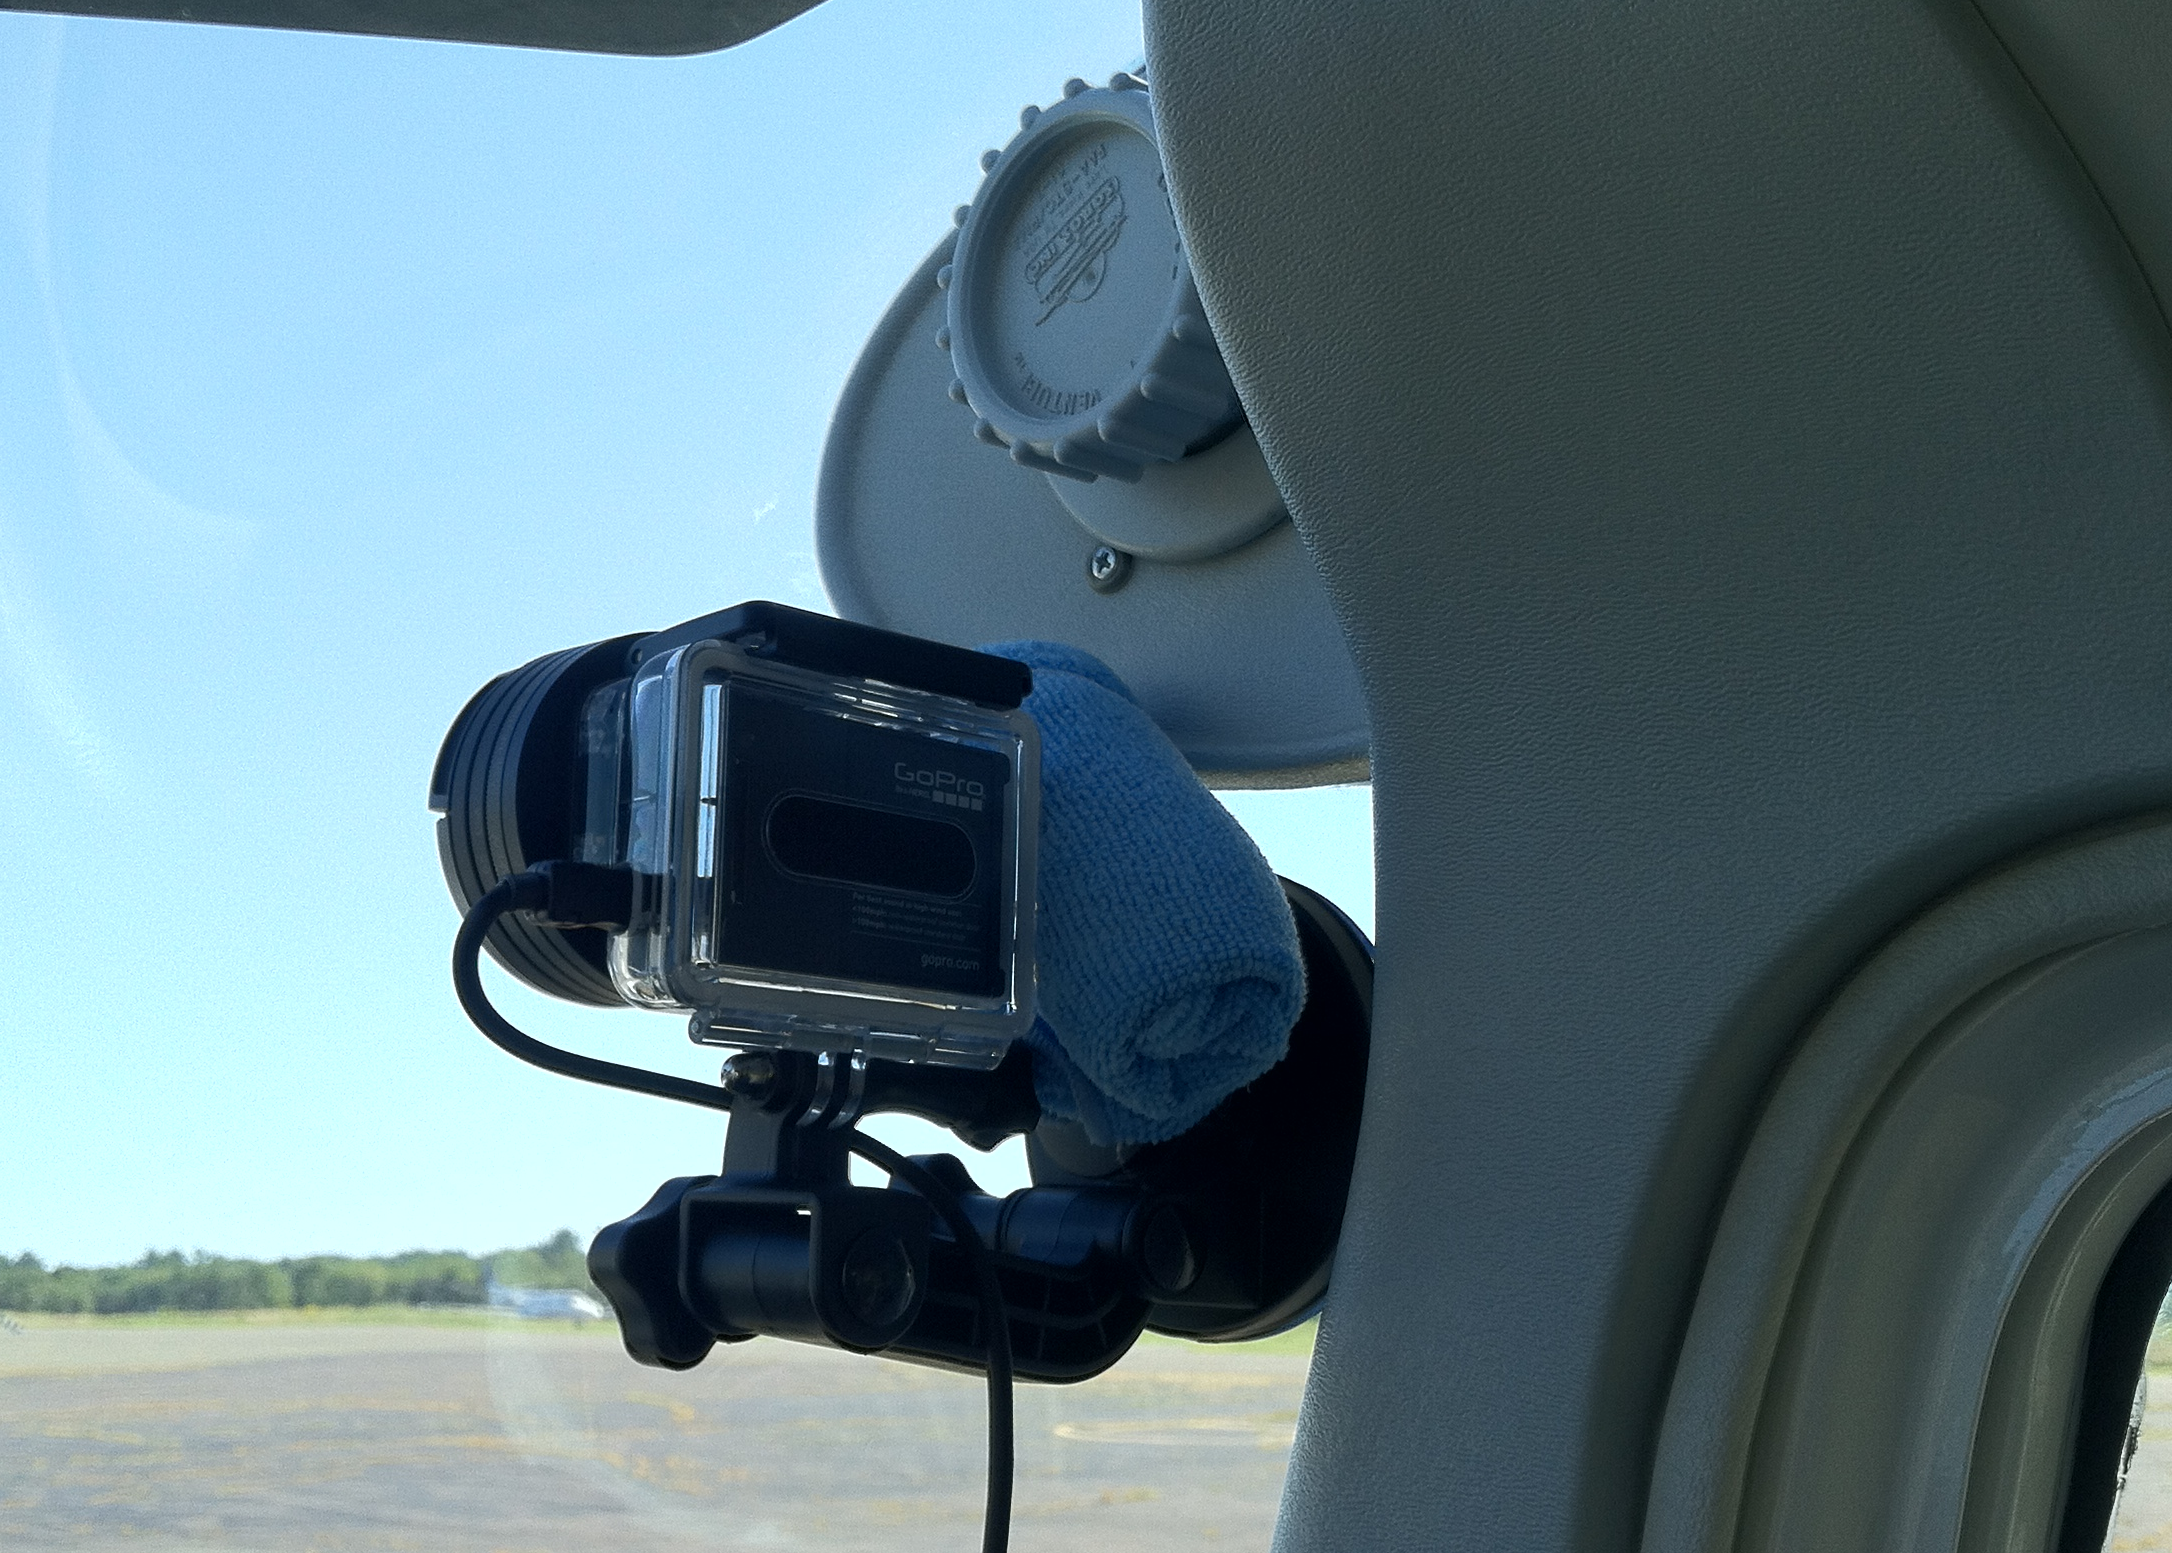 Mounting gopro to aircraft